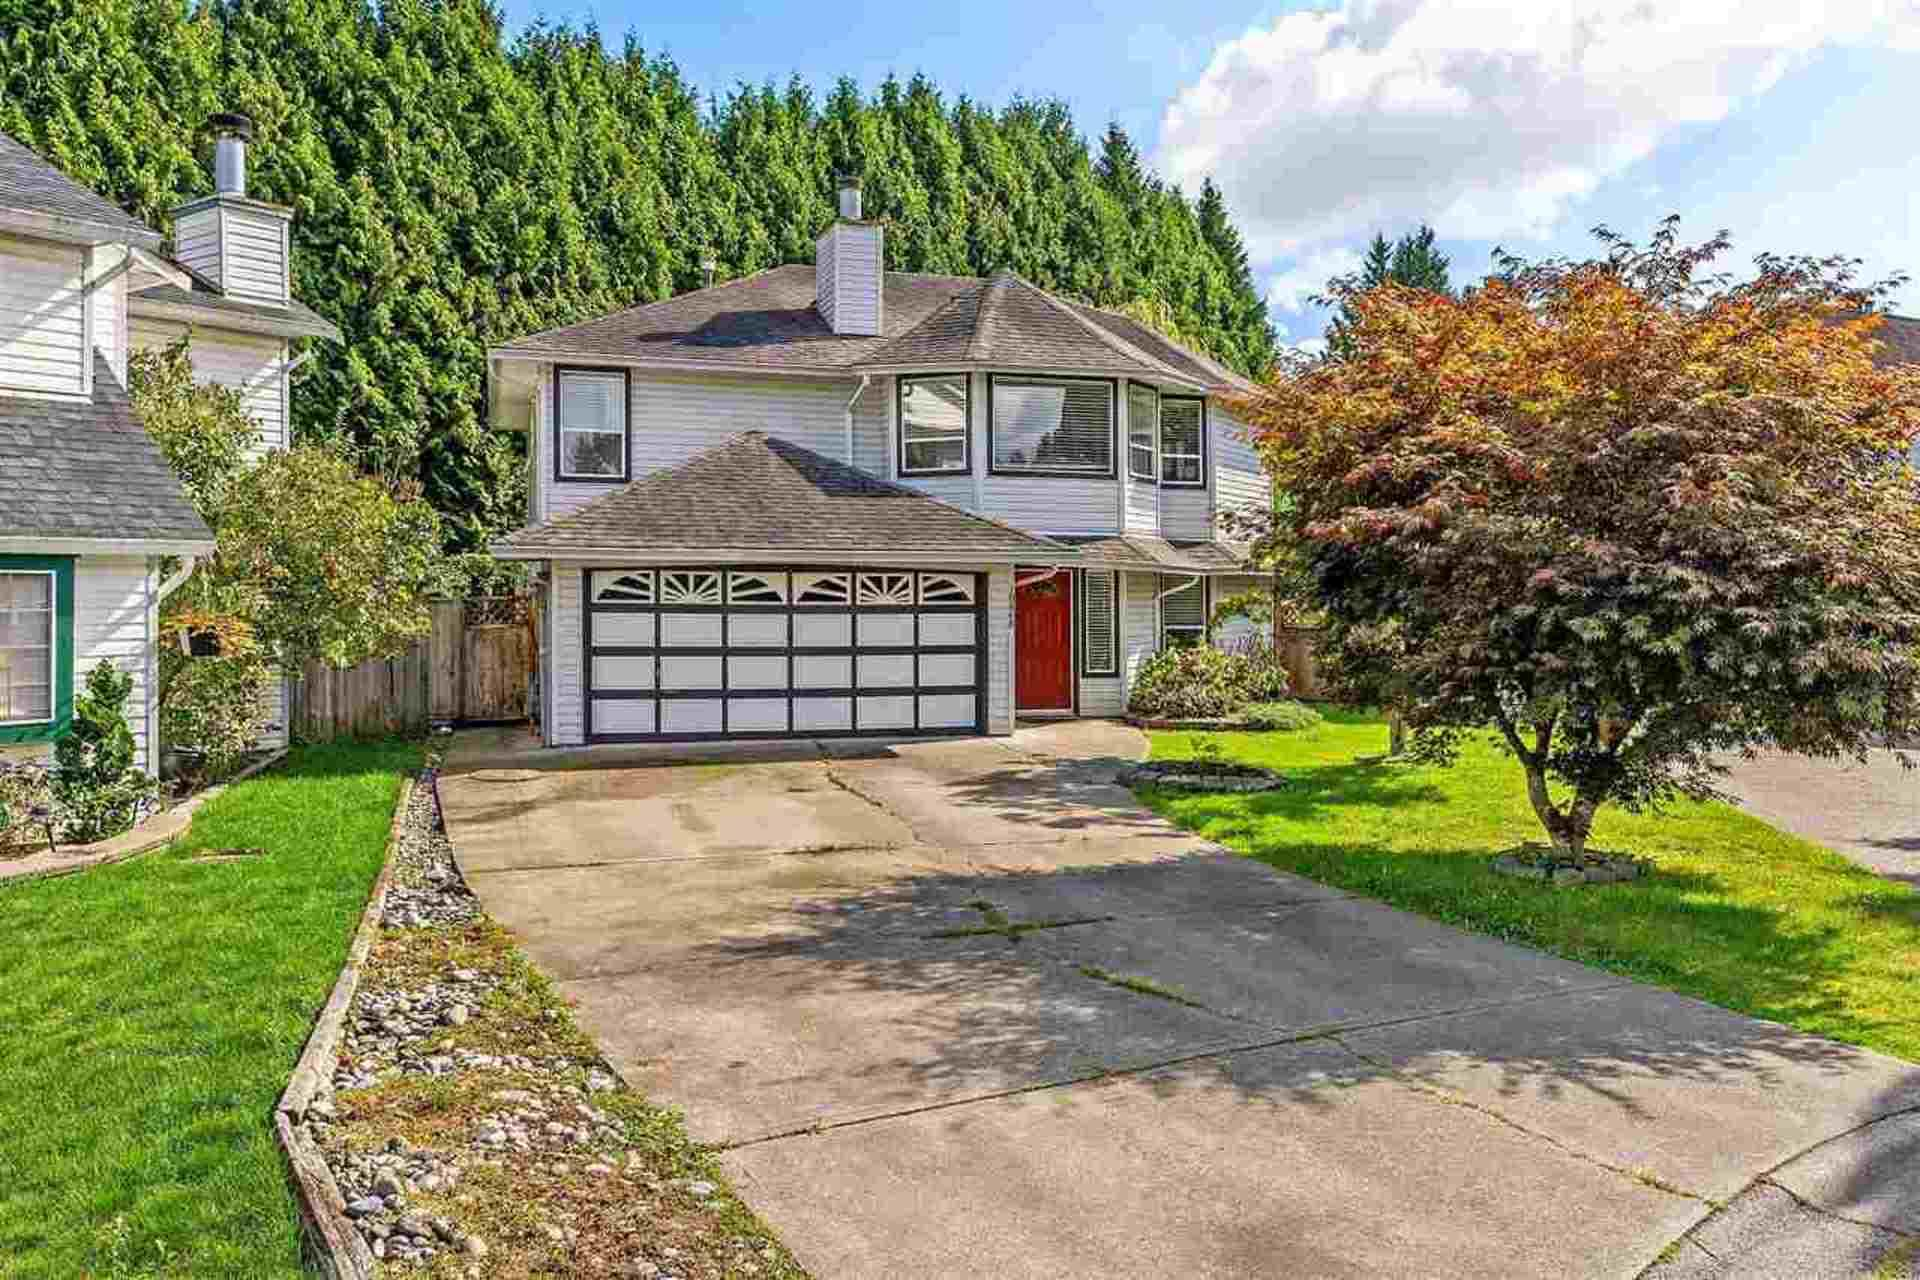 18868 124 Avenue, Central Meadows, Pitt Meadows